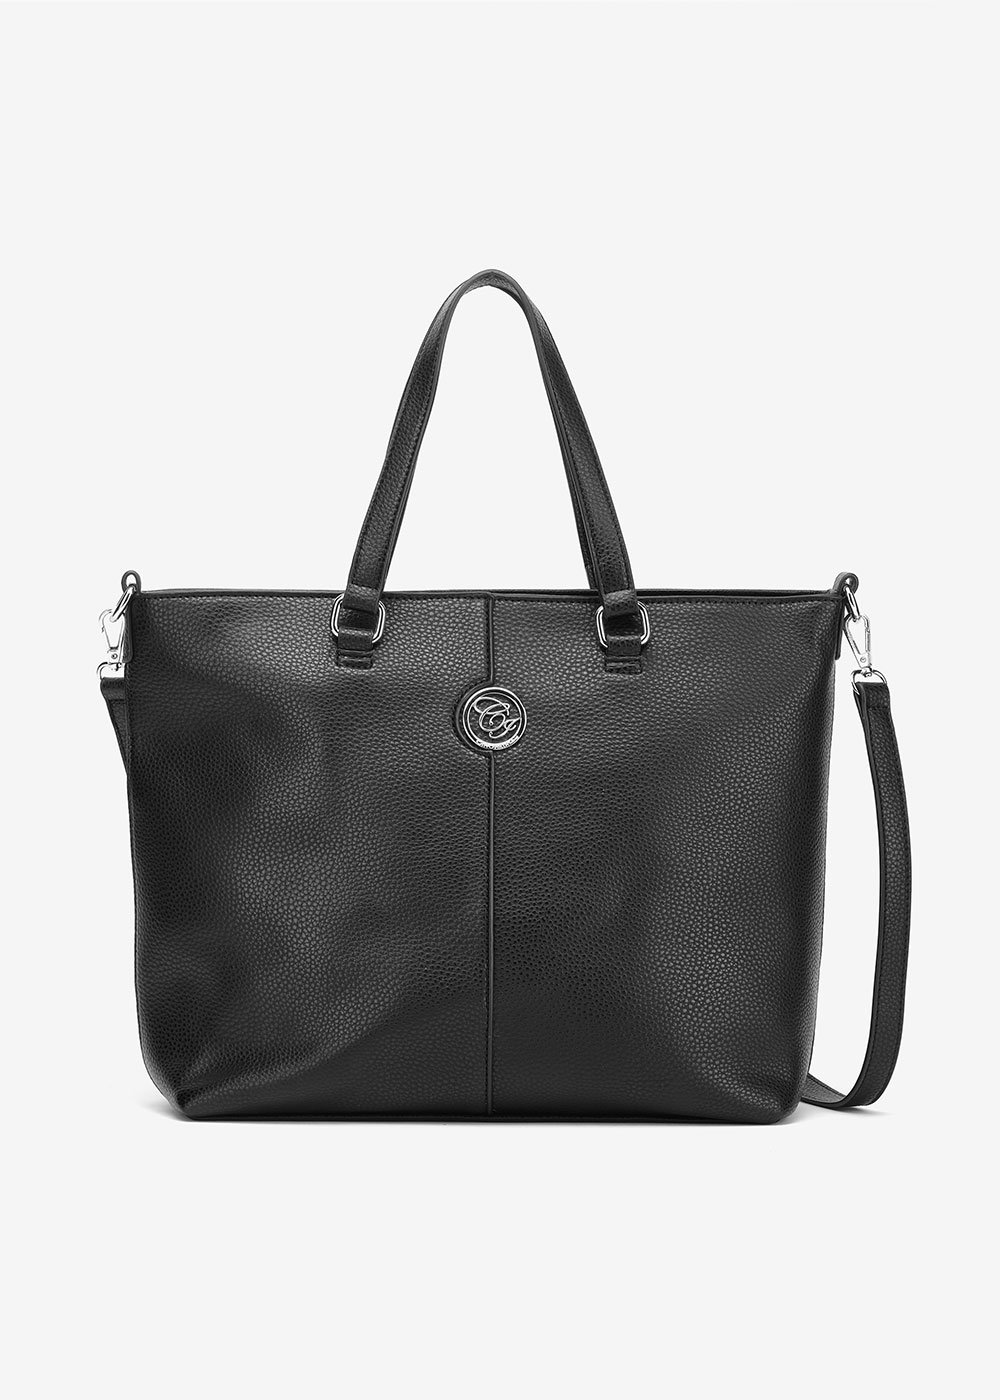 Shopping bag Baggy stampa cervo - Black - Donna